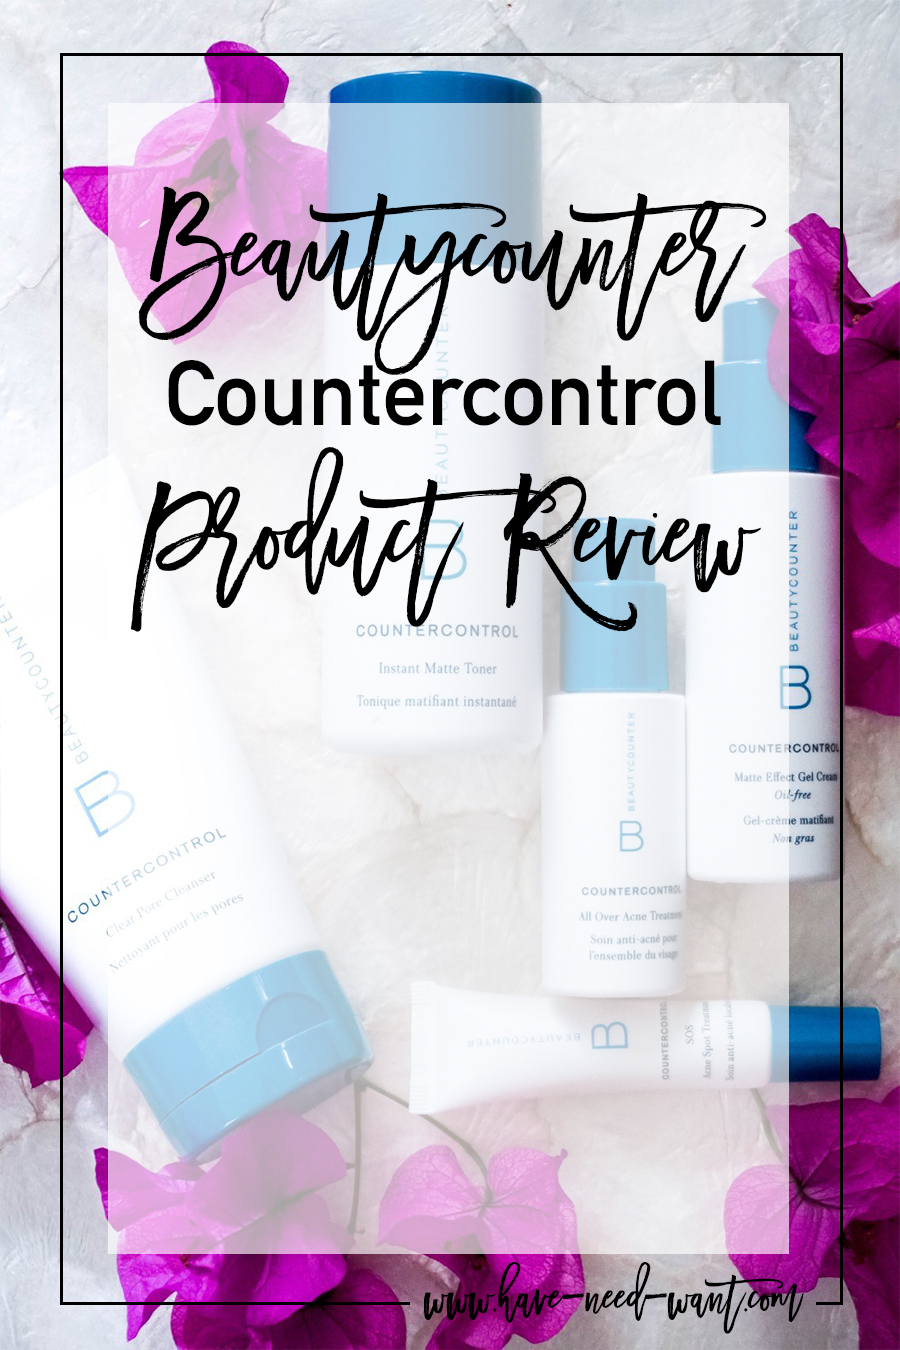 Beautycounter Countercontrol Line Product Review - Have Need Want